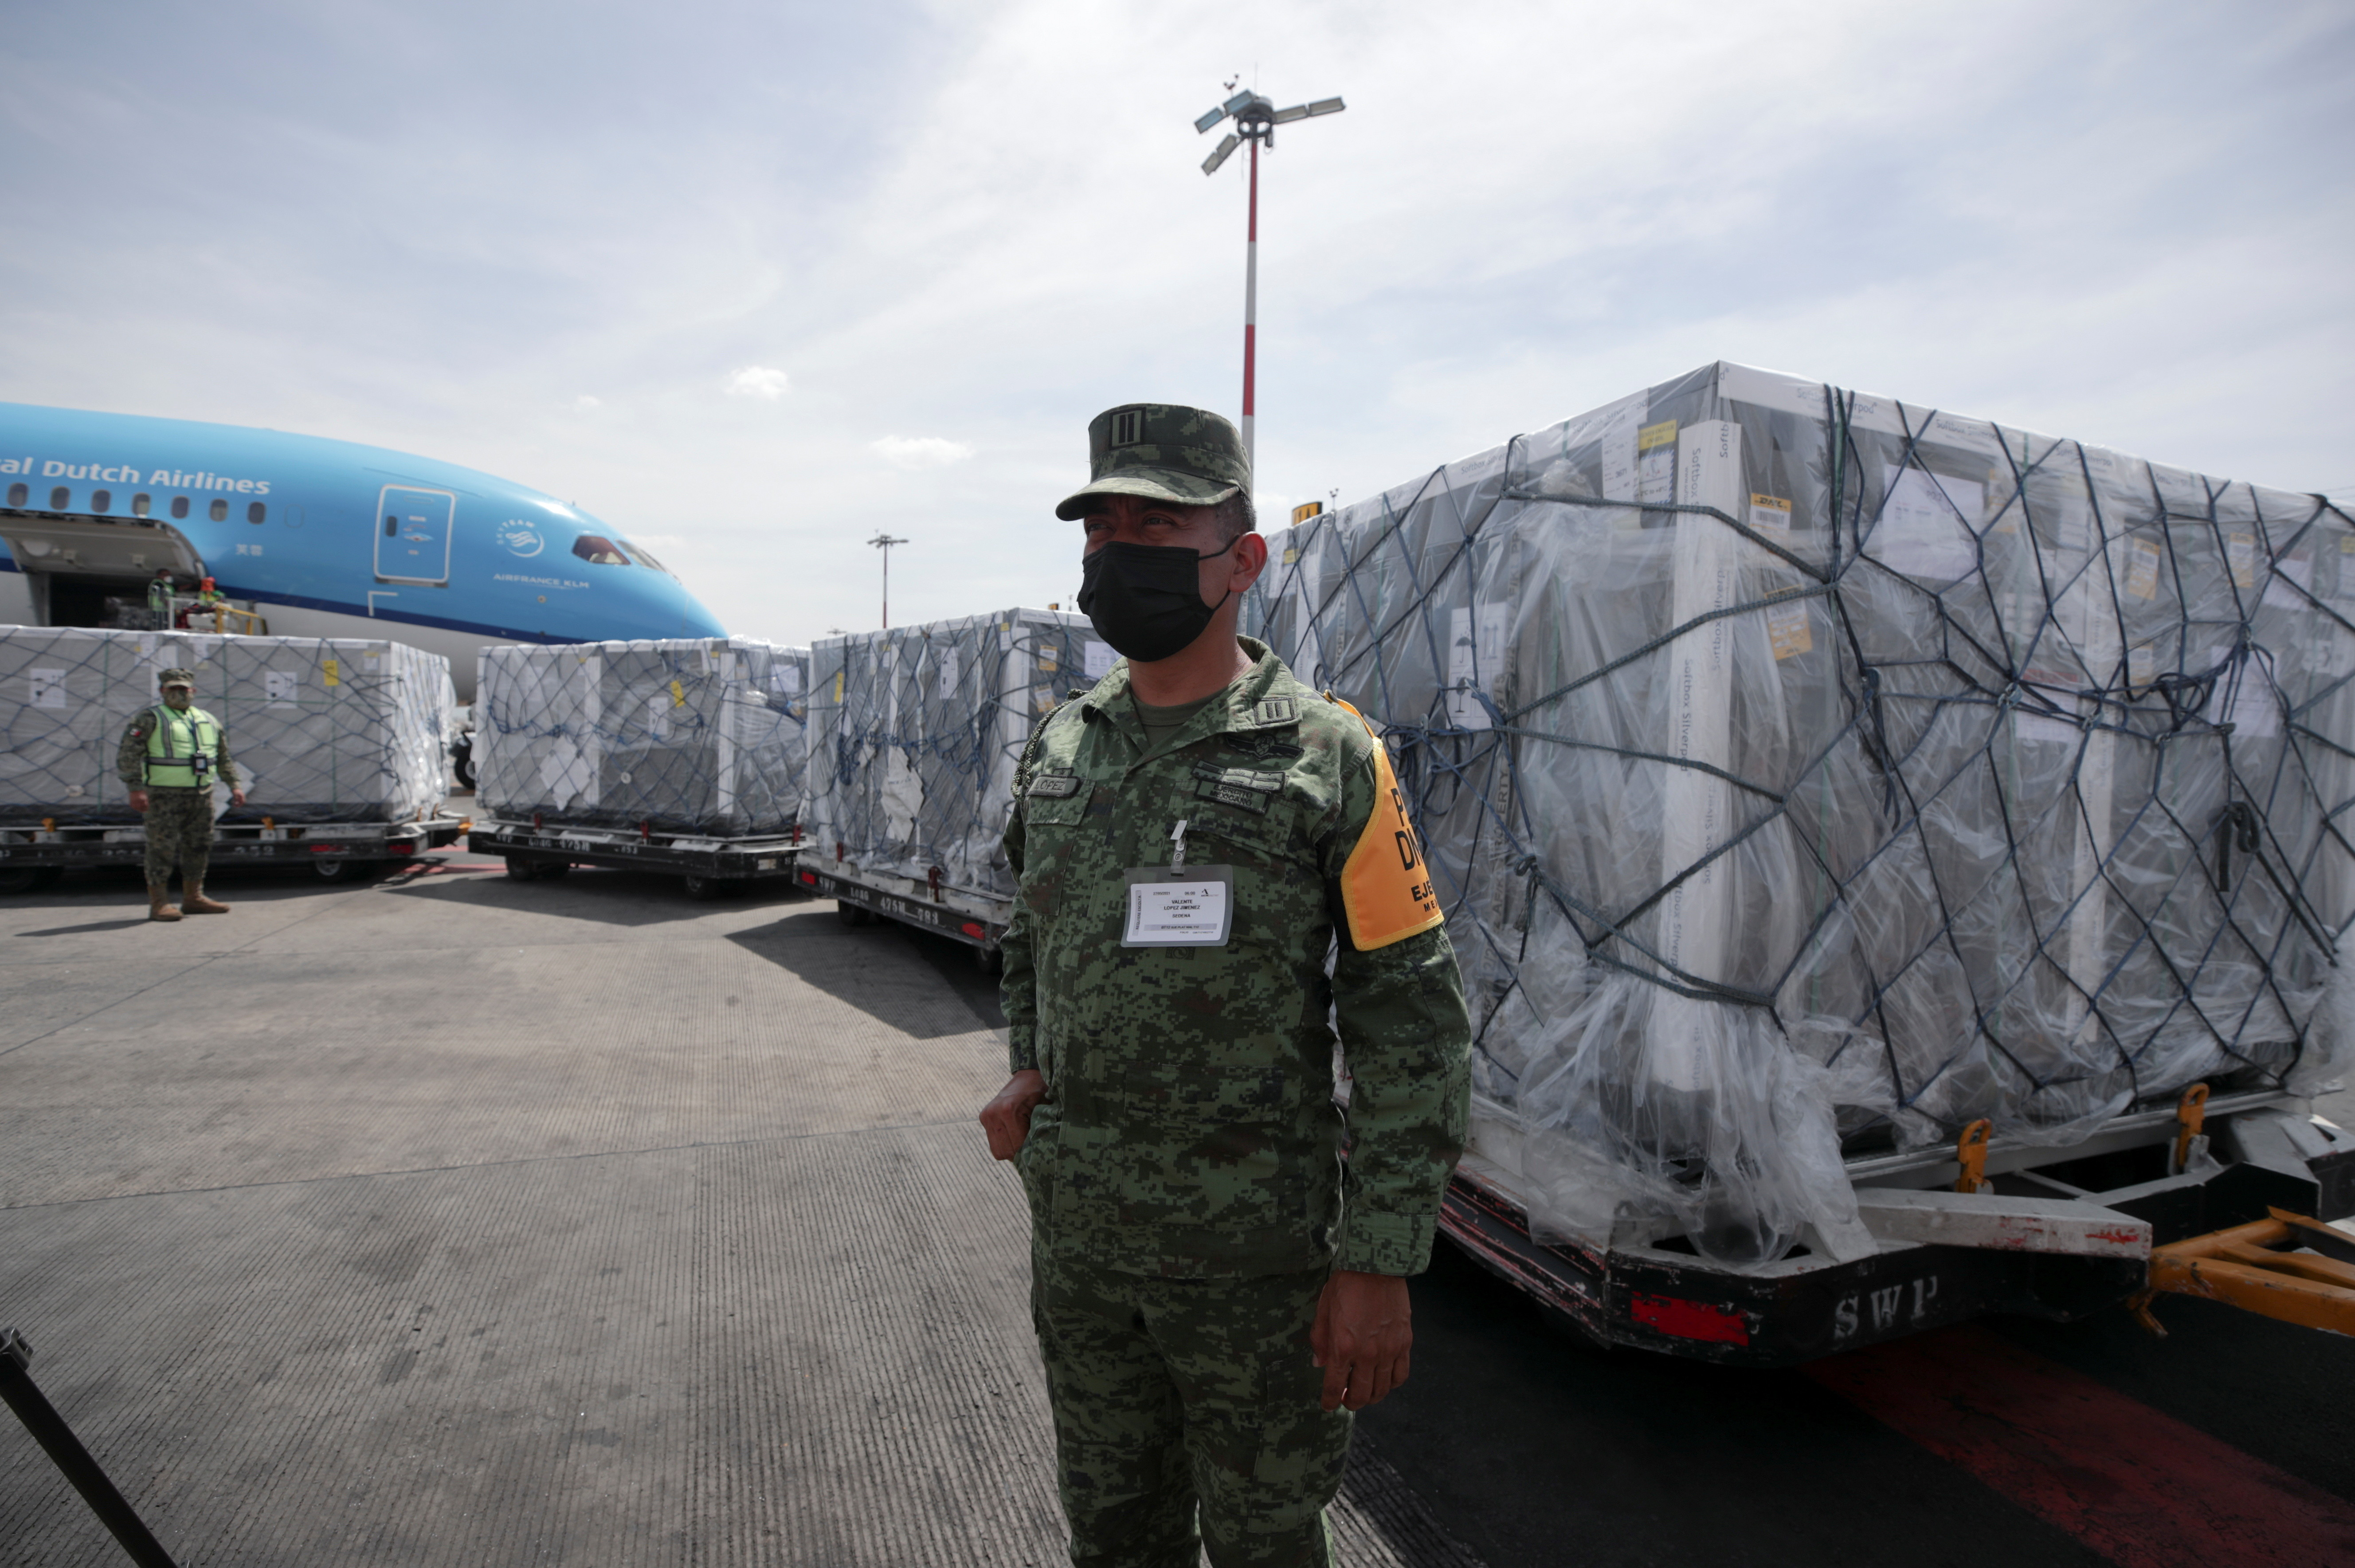 A member of the National Guard looks on as a batch of AstraZeneca coronavirus disease (COVID-19) vaccines, delivered under the COVAX scheme, is unloaded from a KLM Boeing 787 at Benito Juarez International Airport in Mexico City, Mexico May 27, 2021. REUTERS/Henny Romero - RC2LON9NCGN9